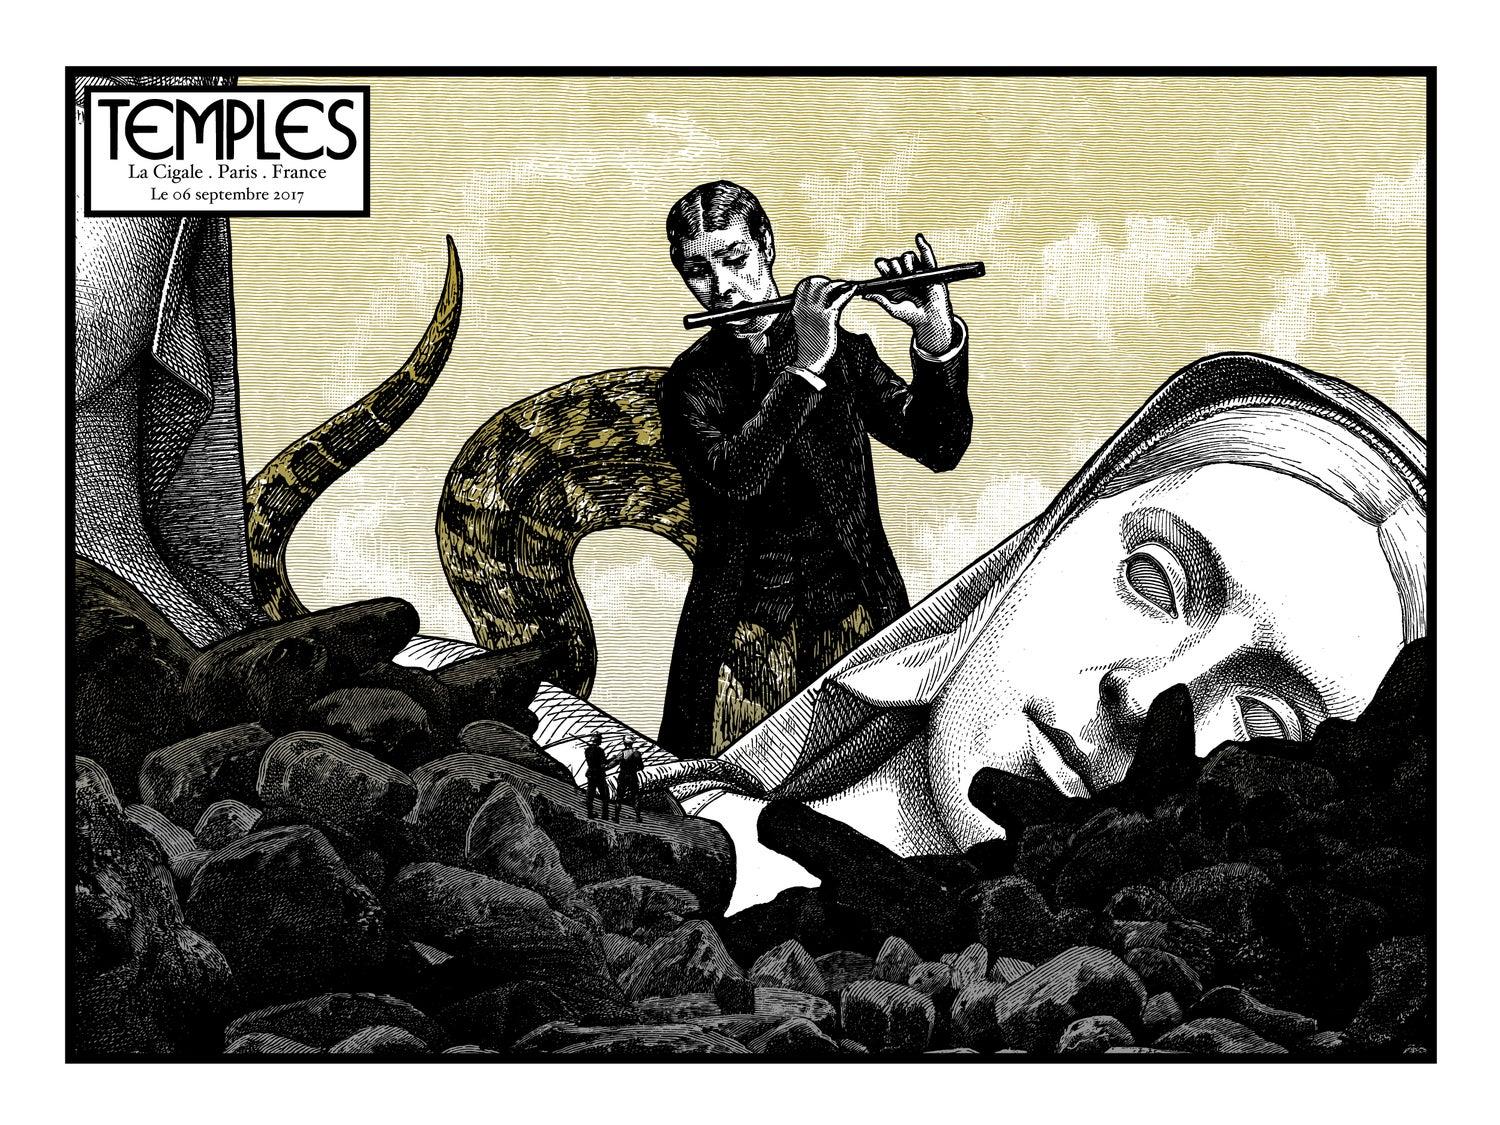 TEMPLES gig poster - La Cigale Paris September 2017